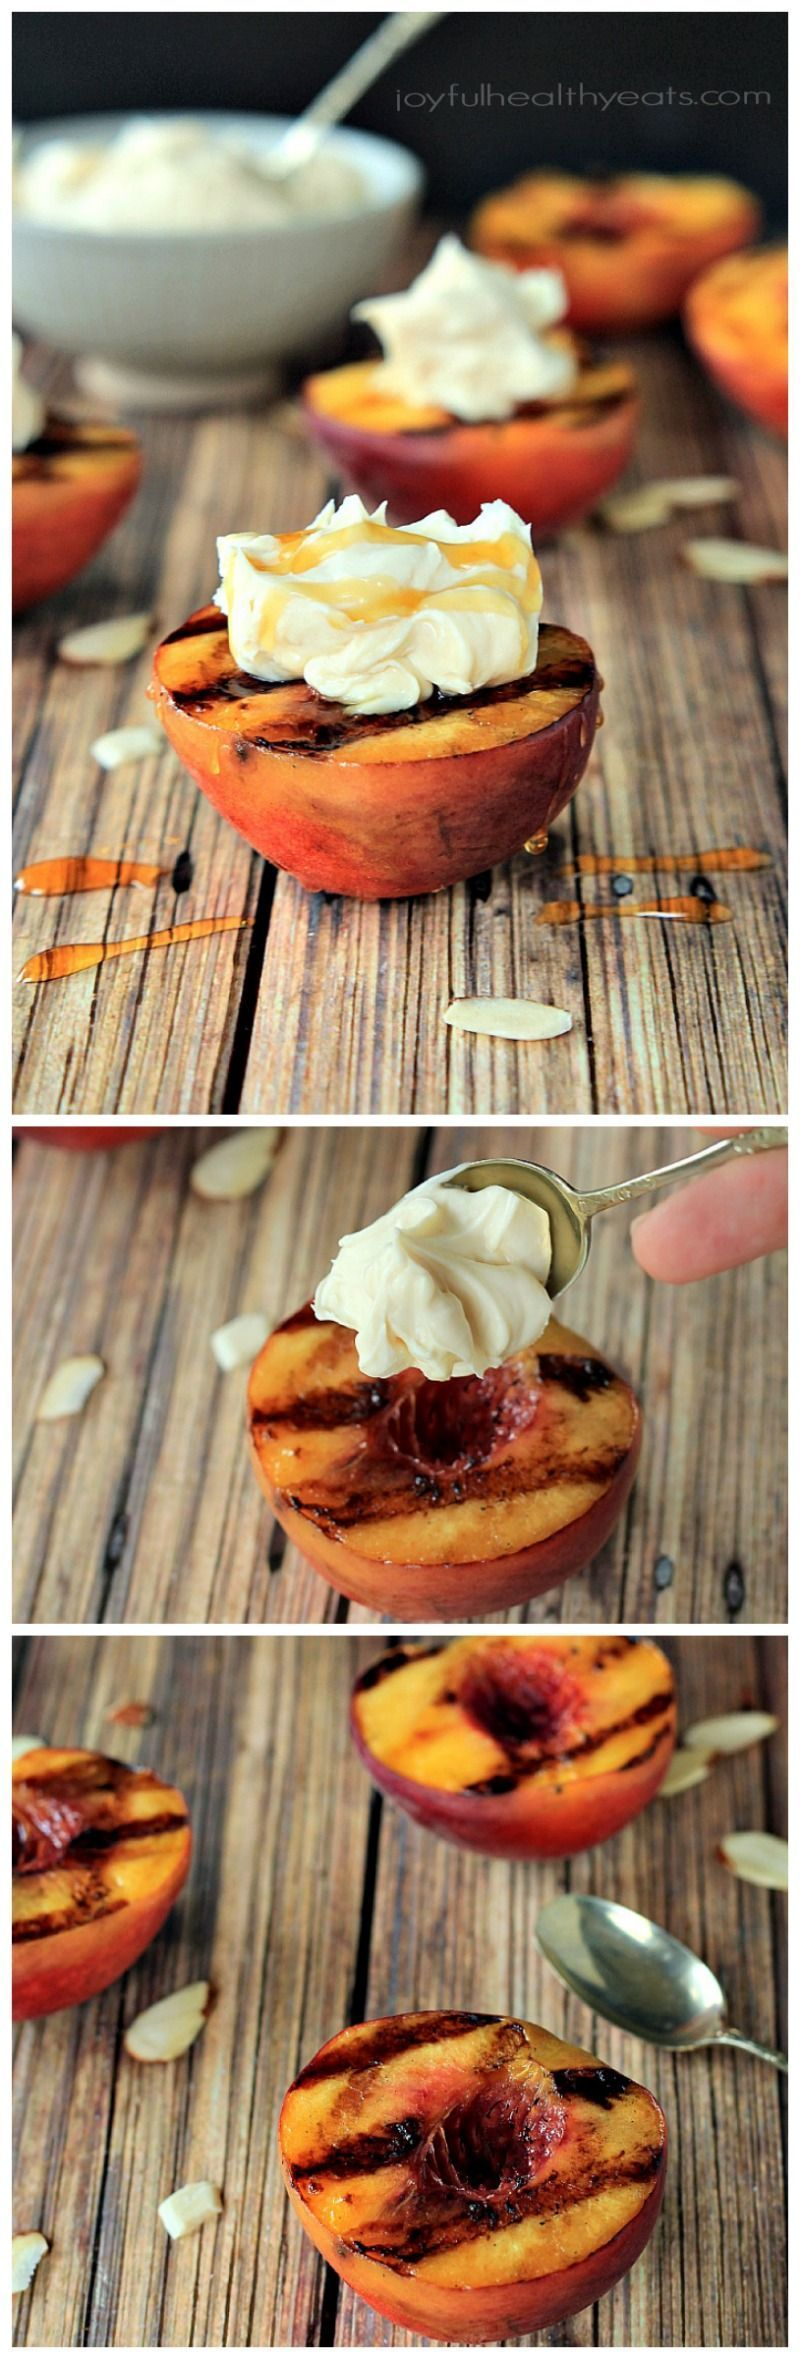 with Maple Honey Mascarpone Cheese + KitchenAid Mixer Giveaway The perfect guilt free late night sweet fix... Grilled Peaches with Maple Honey Mascarpone Cheese | The perfect guilt free late night sweet fix... Grilled Peaches with Maple Honey Mascarpone Cheese |